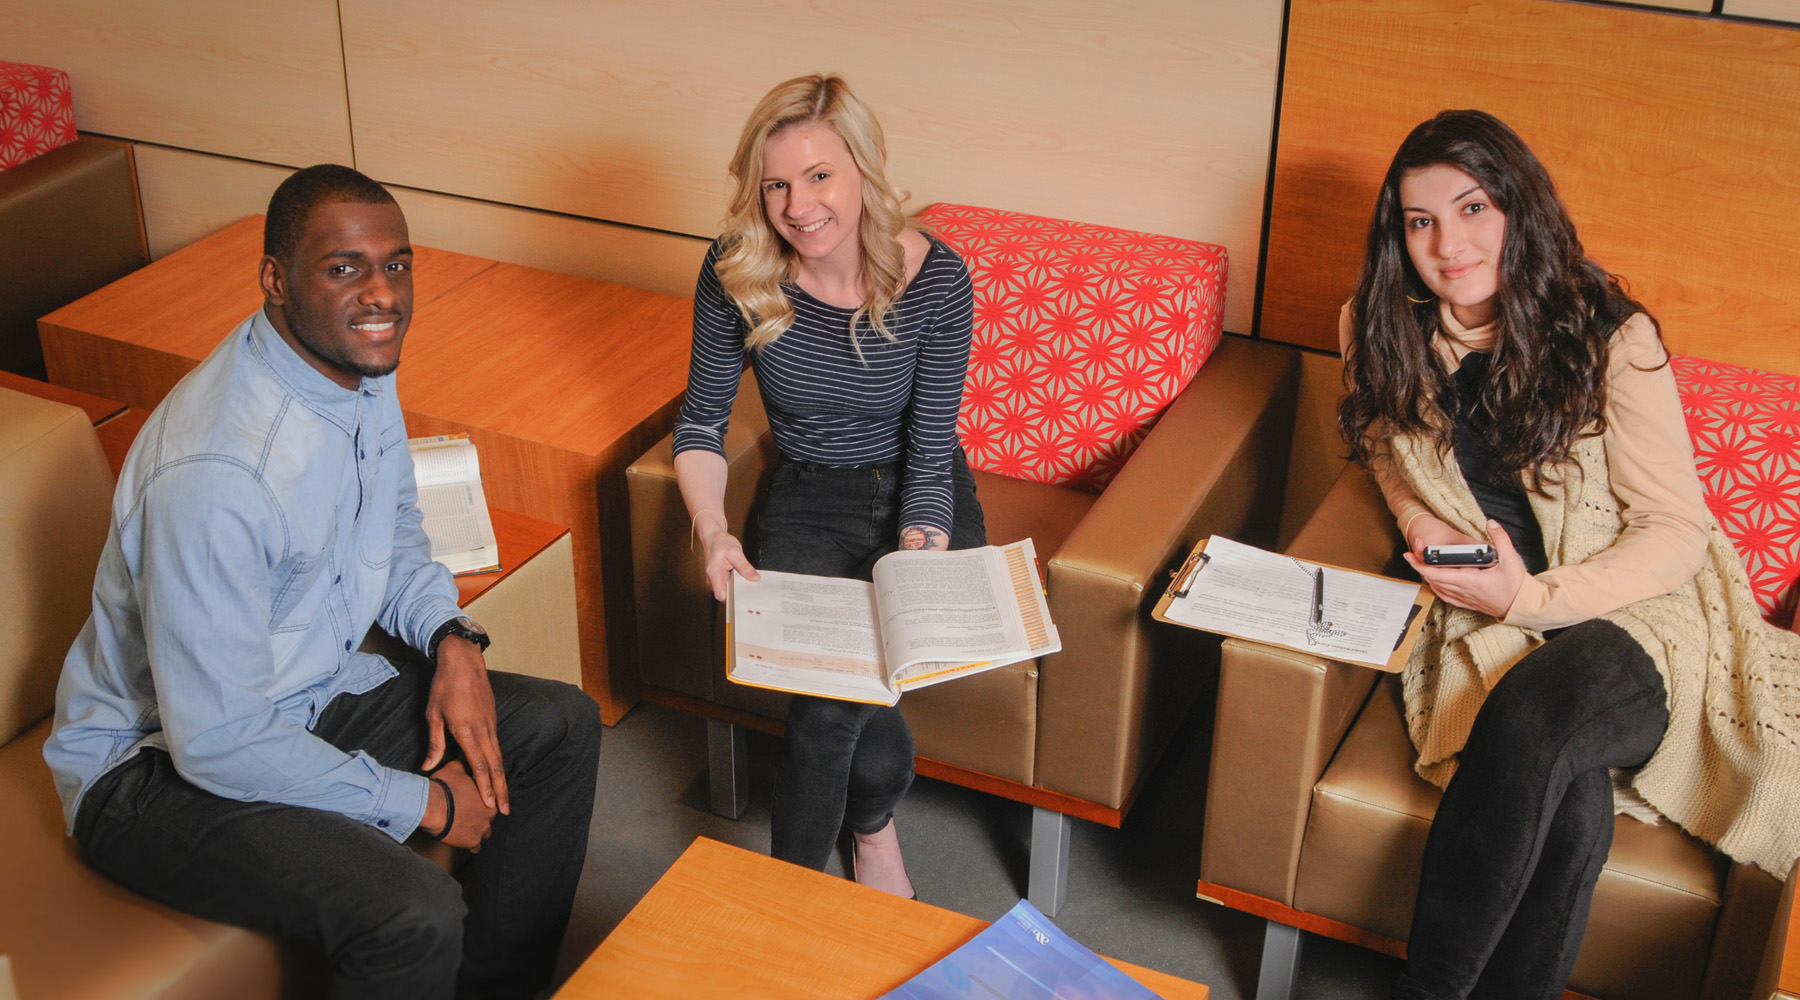 3 Students Sitting In A Study Area In The H Bldg